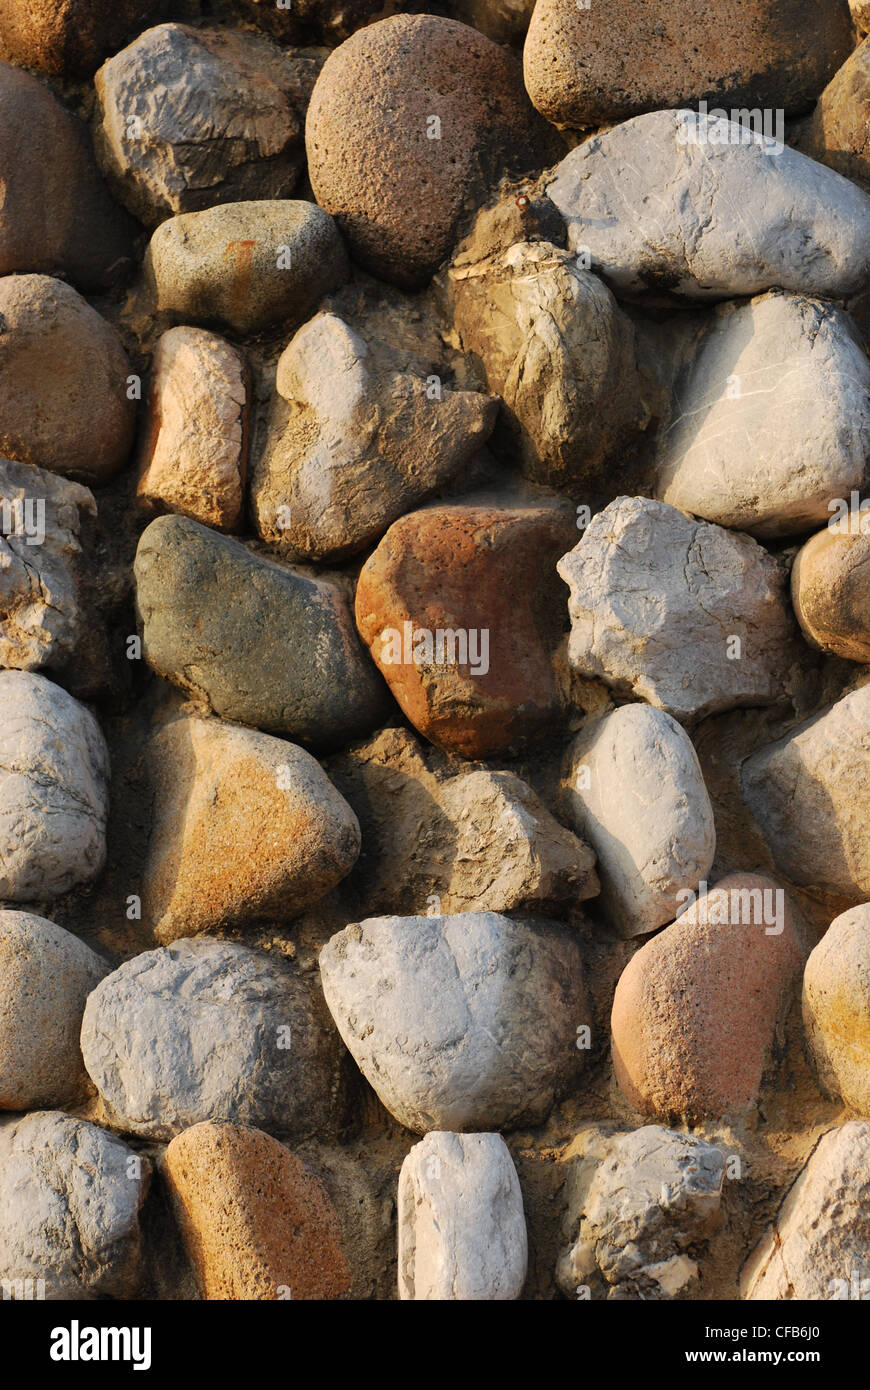 Pebbles on a wall - Stock Image